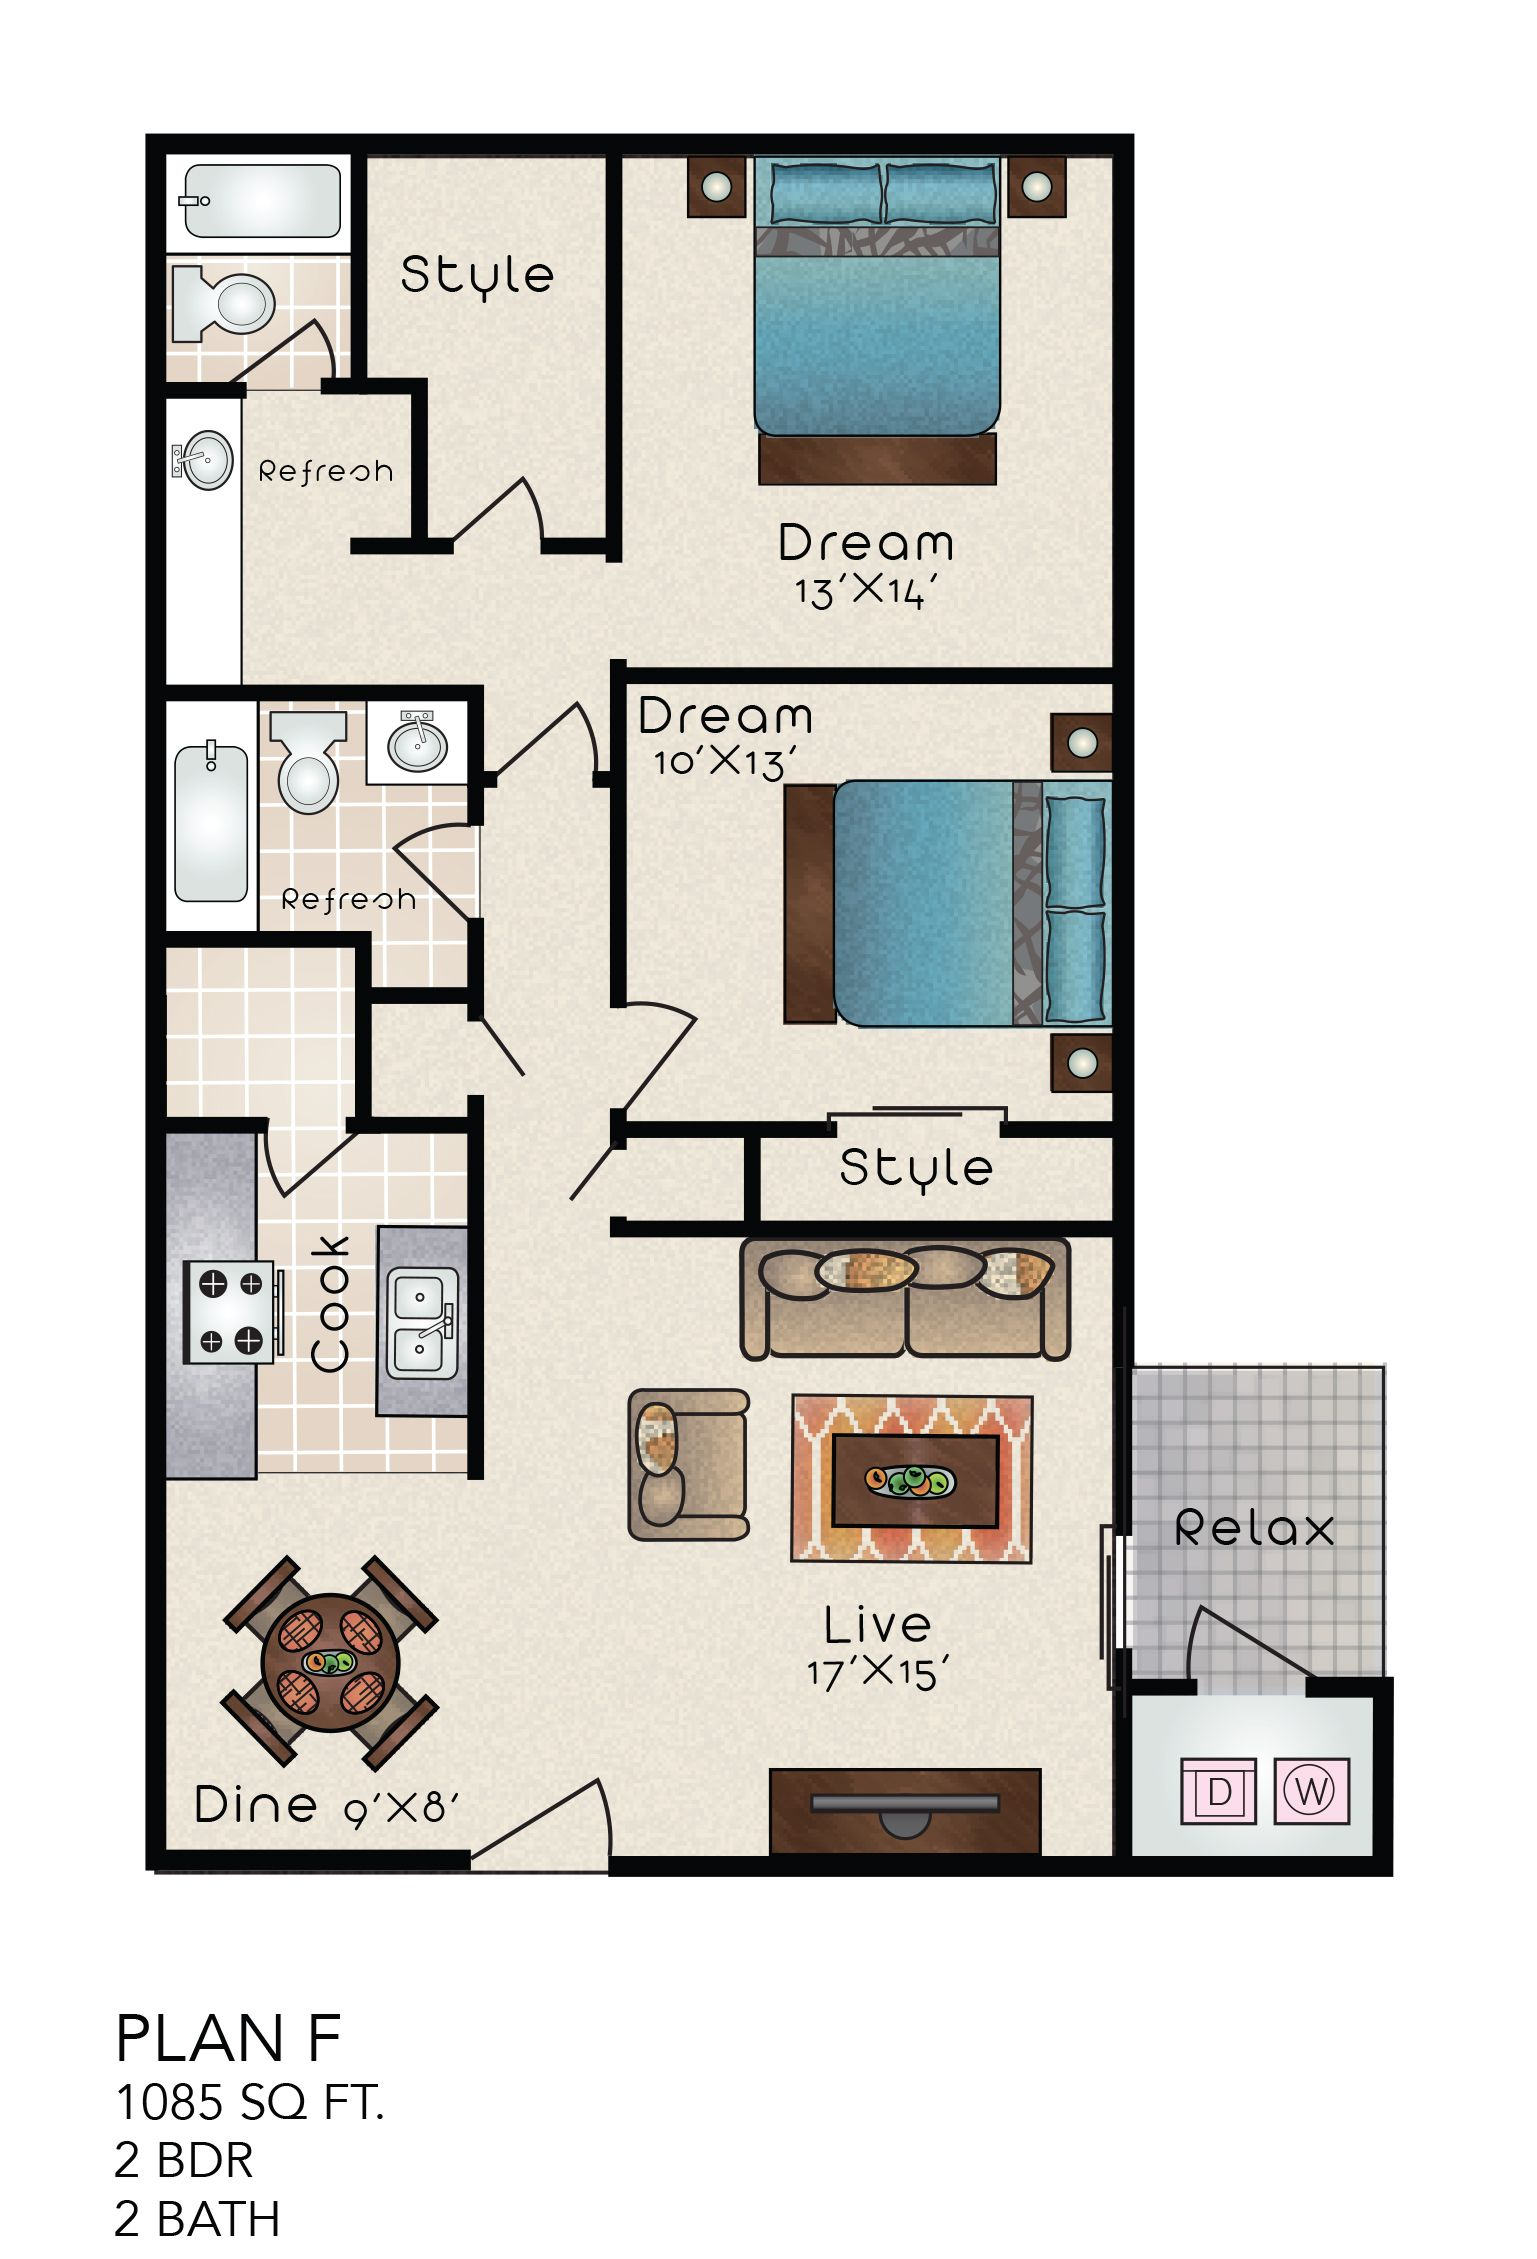 Pin By Distinction Apartment Homes On Floorplans Property Photos Small House Plans Floor Plans House Plans